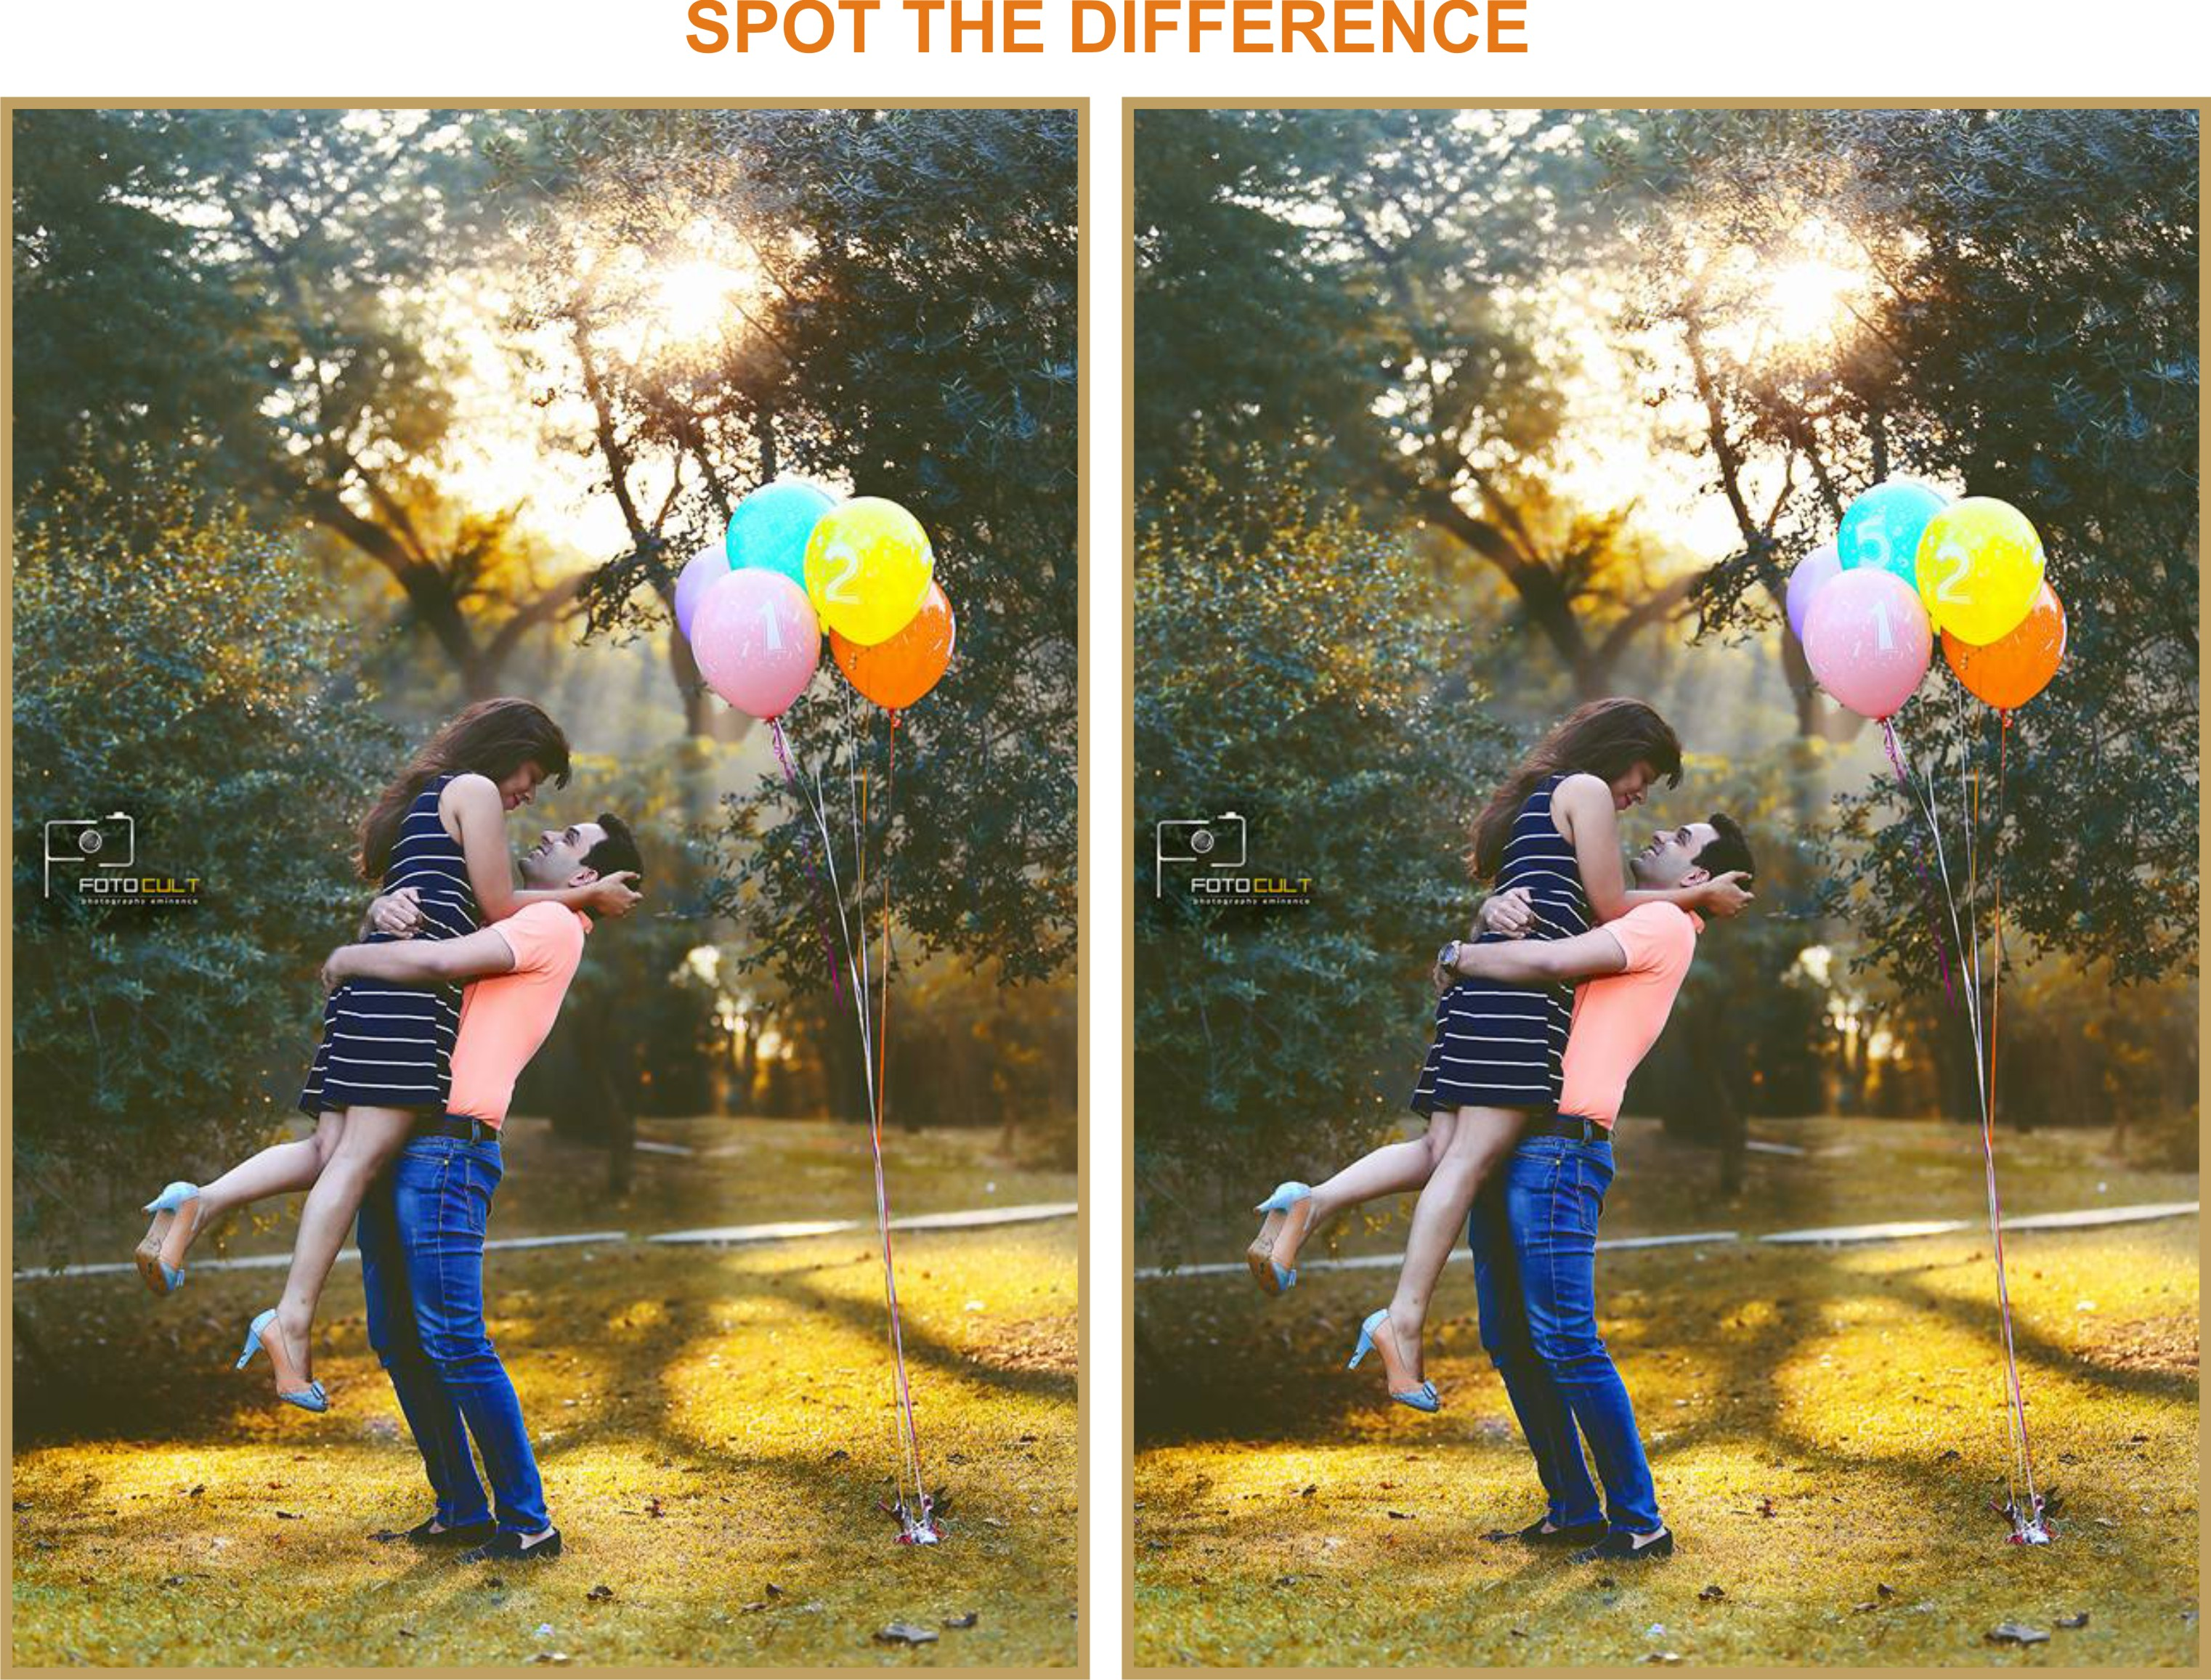 99% Of The People Cannot Spot The Difference Between These ...